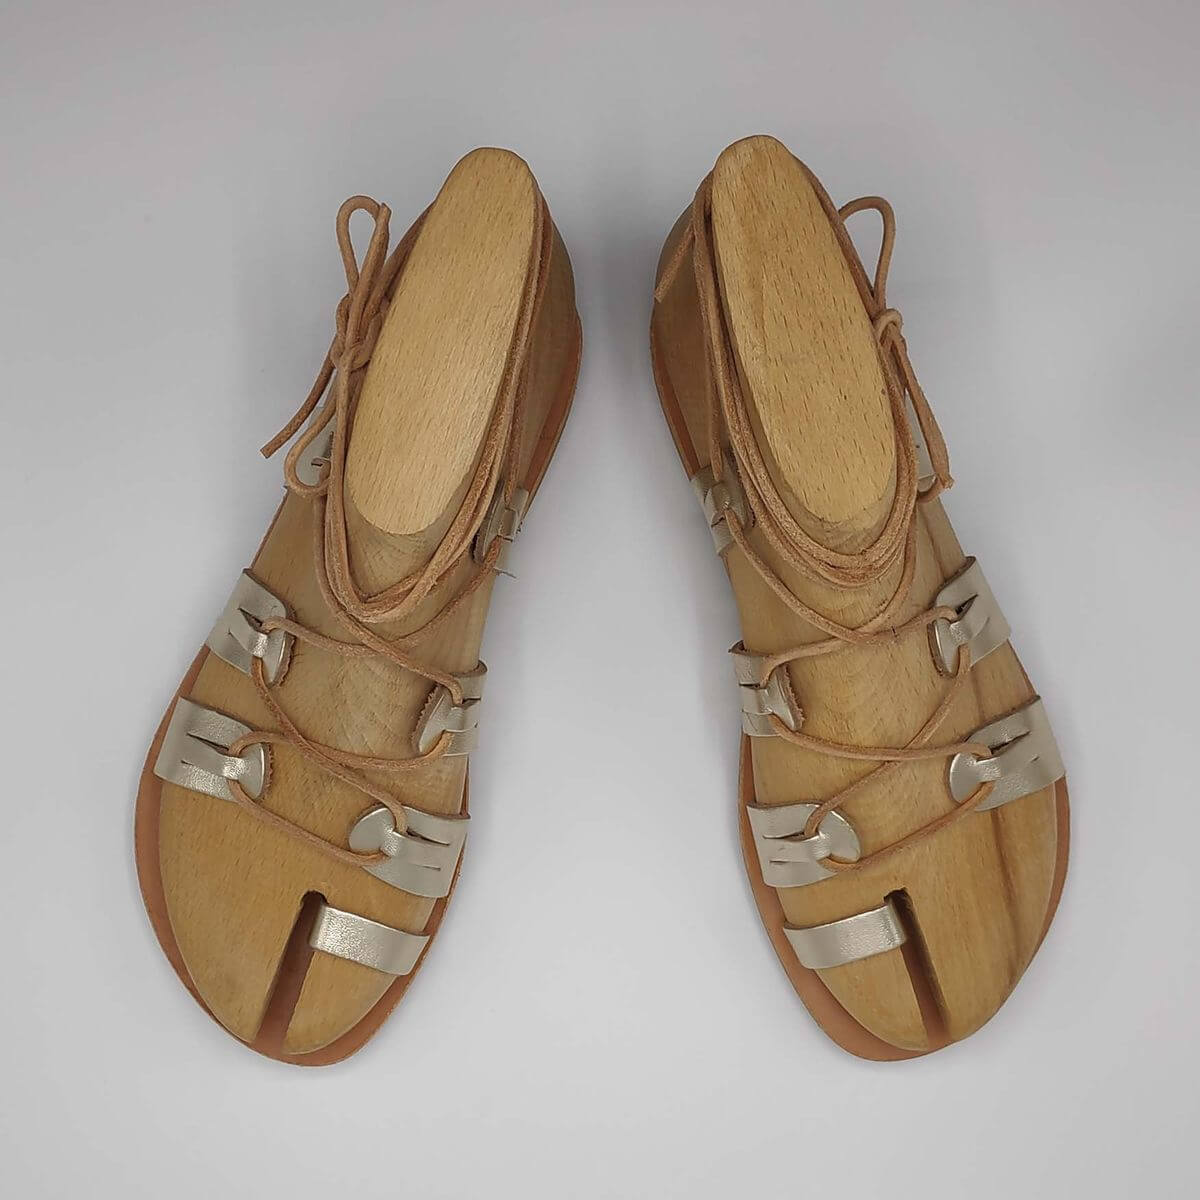 SPARTIAT Lace Up Sandals - Pagonis Greek Sandals